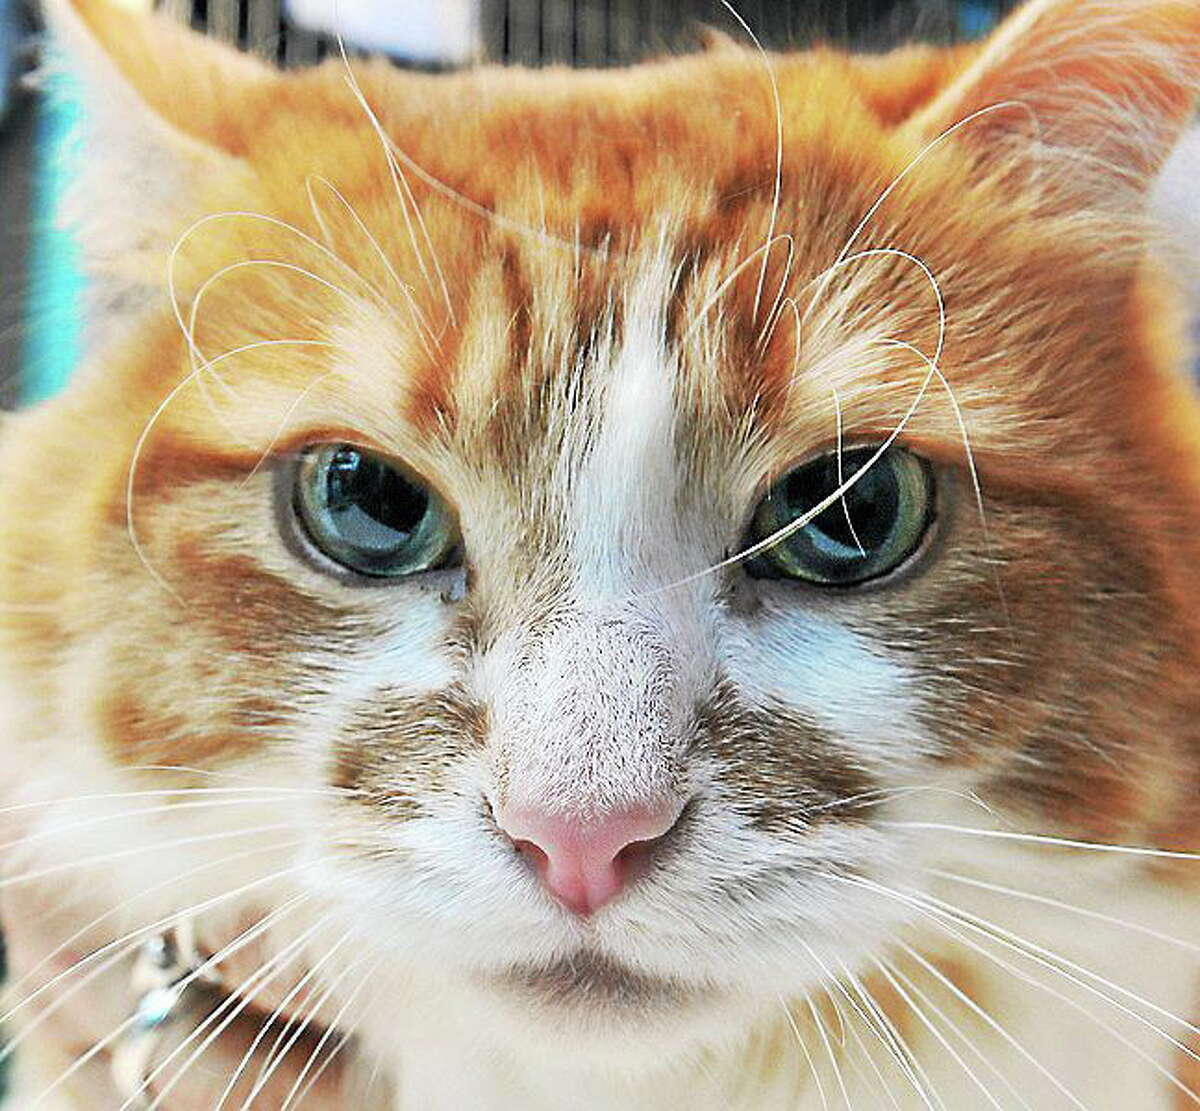 January 31, 2014 - Kimber, a 2-year-old orange and white female. Prefers women over men. Ideally best home would be one where she's the only animal. Call CATALES, Inc. at 860-344-9043. CATALES, Inc. is a non-profit no-kill organization consisting of volunteers dedicated to improving and enriching the lives of homeless cats and kittens. http://www.catales.org/kimber-p-849.html (Catherine Avalone/The Middletown Press)